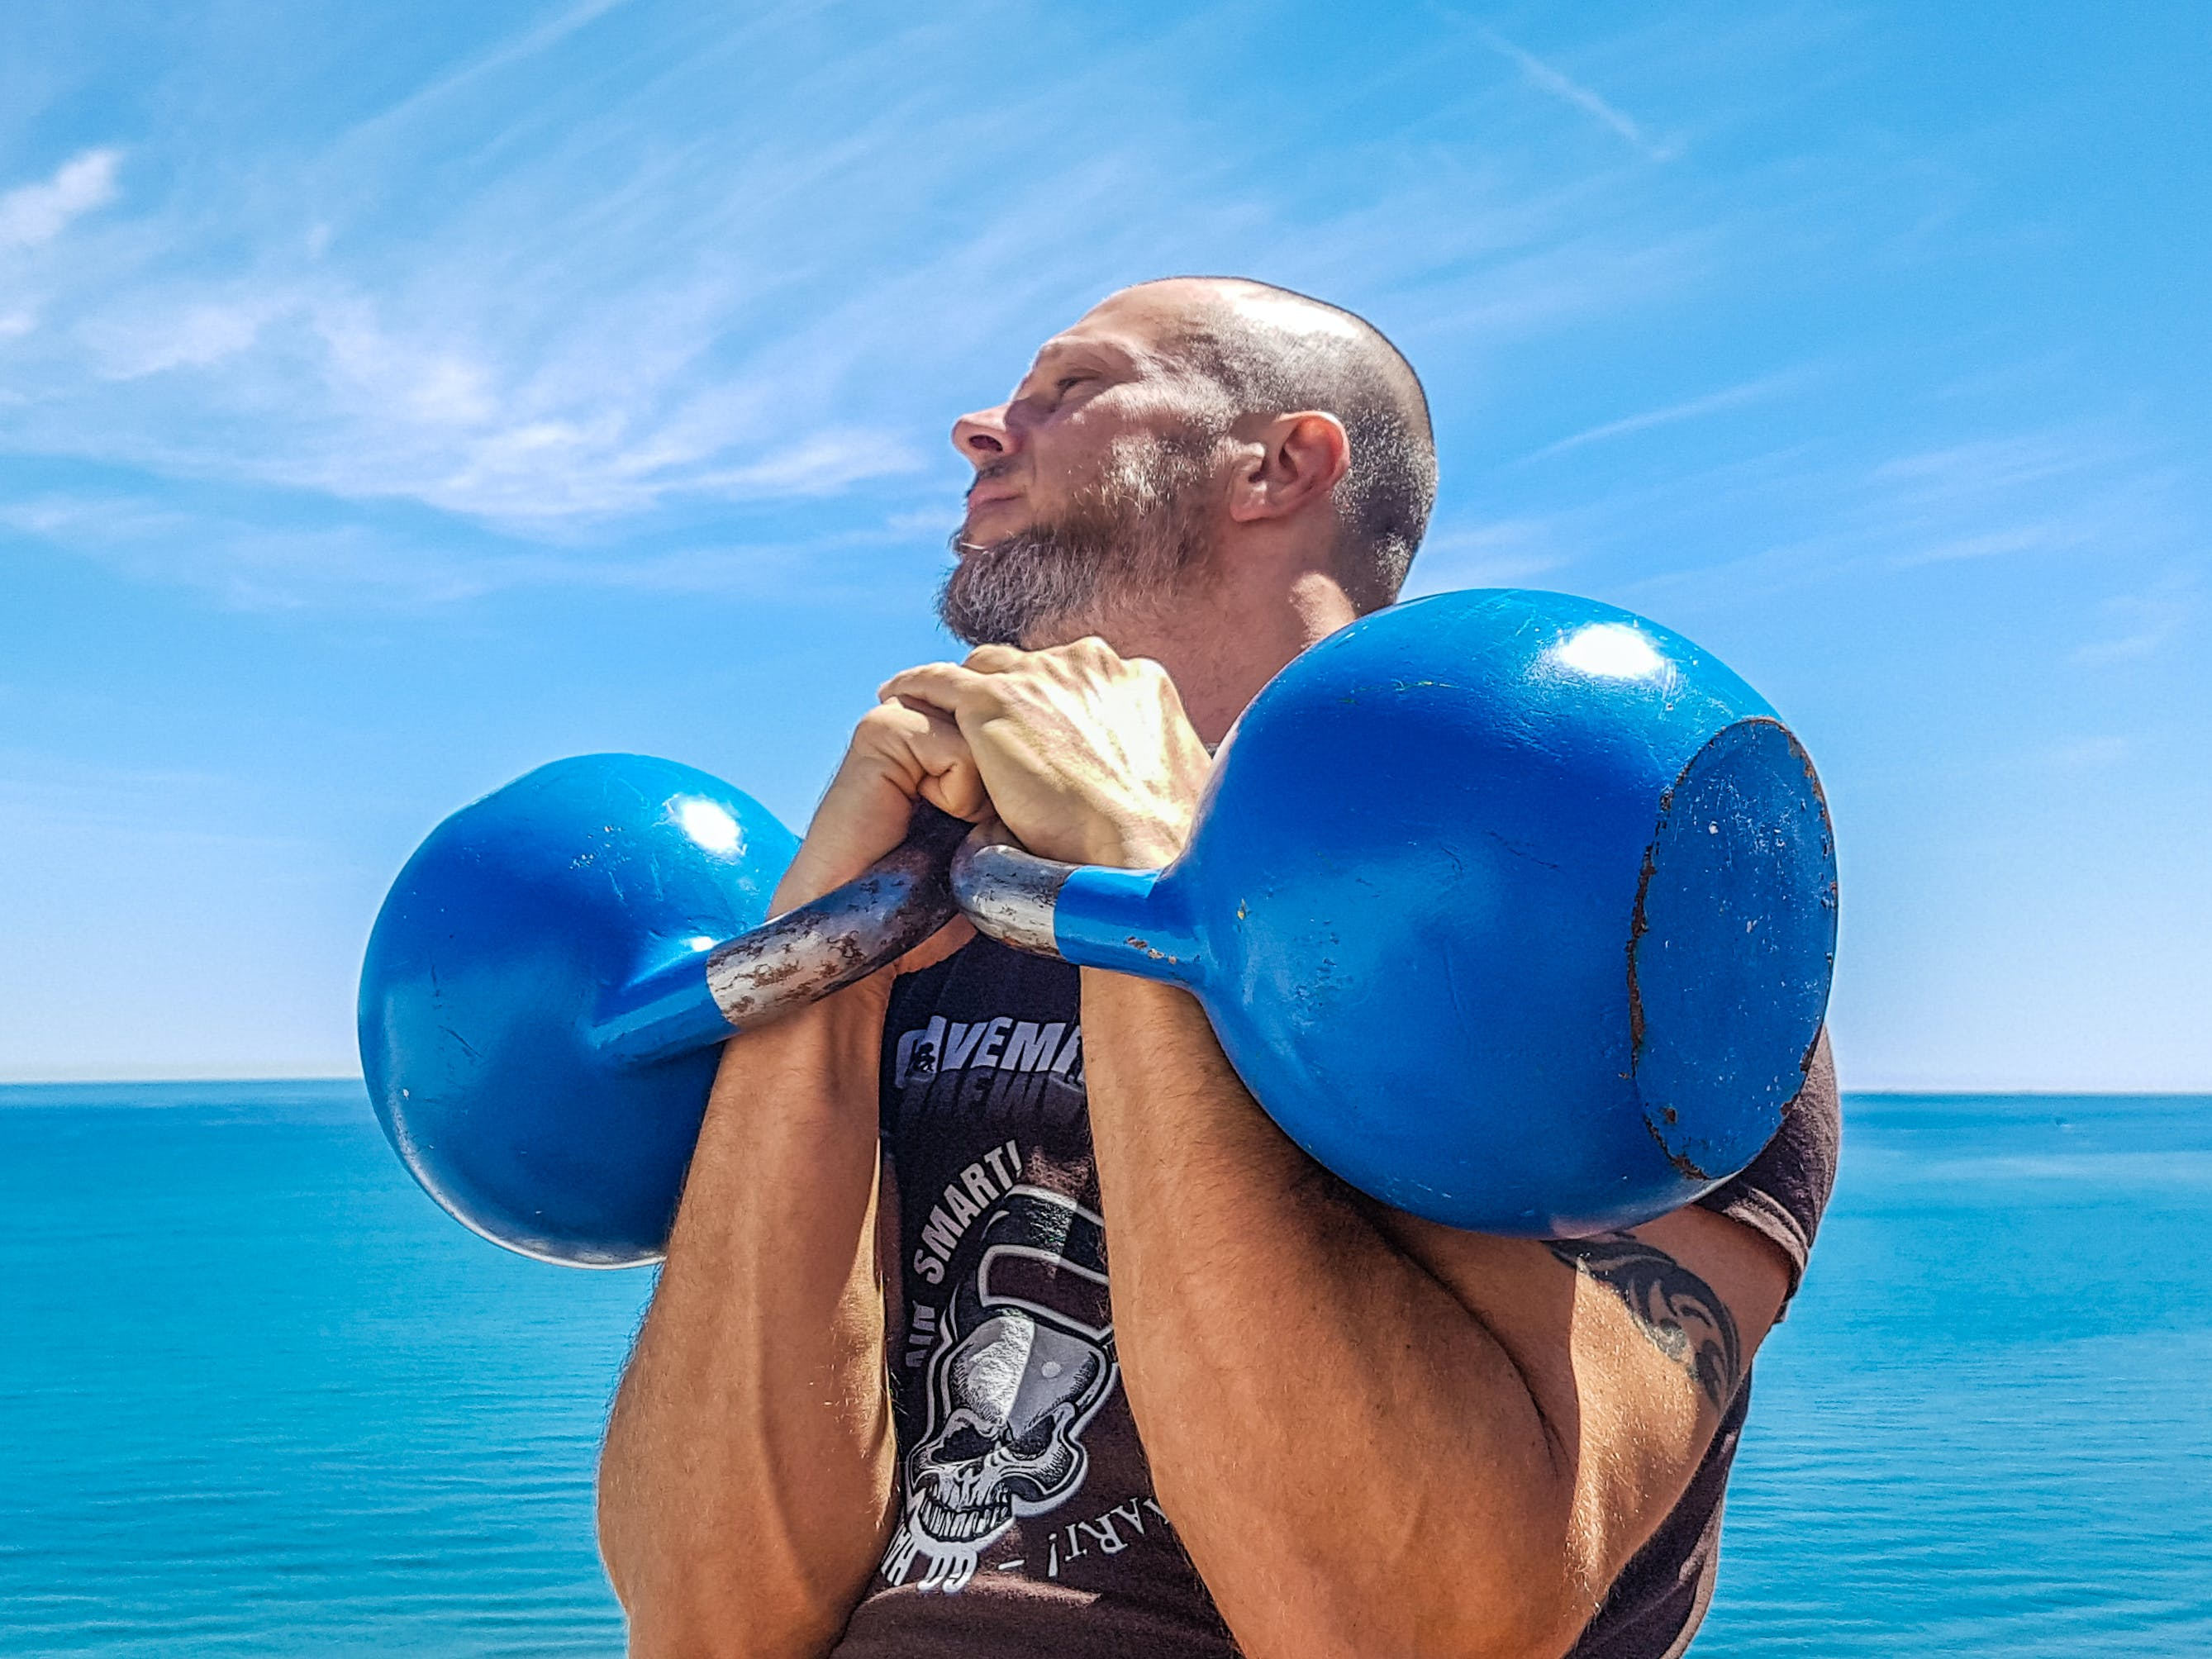 Man Lifting Pair of Blue Kettlebells